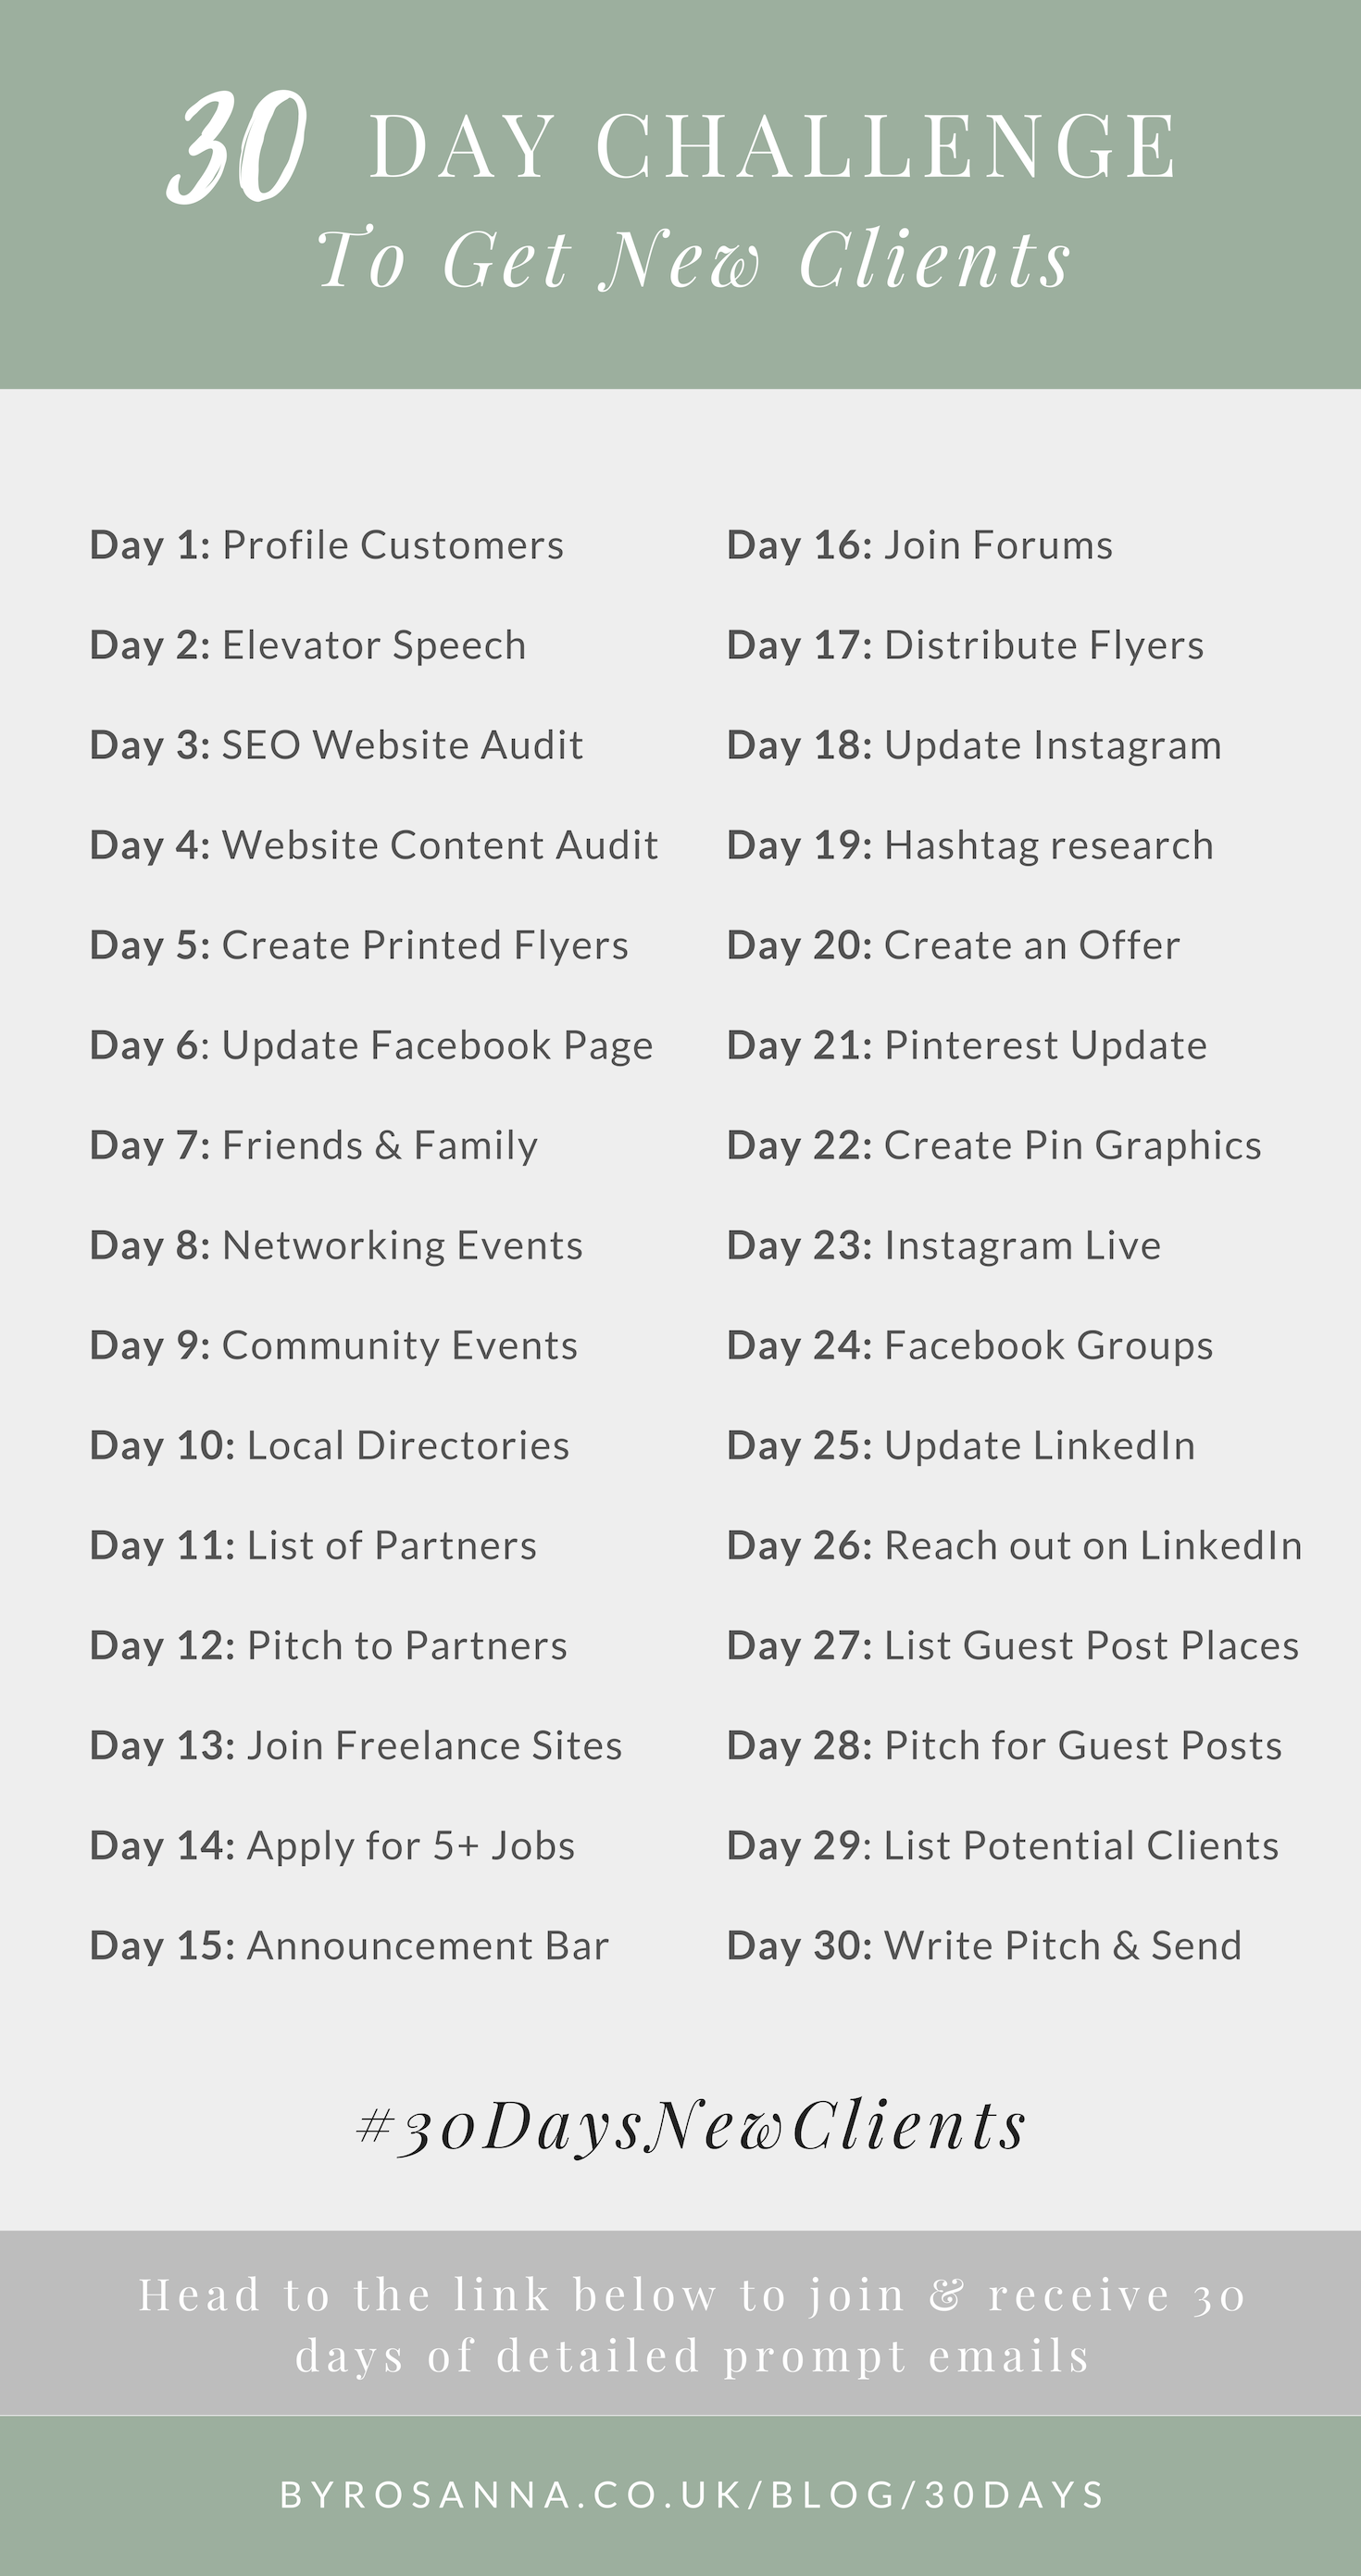 30 Day Challenge to New Clients (for Freelancers and Small Business Owners)